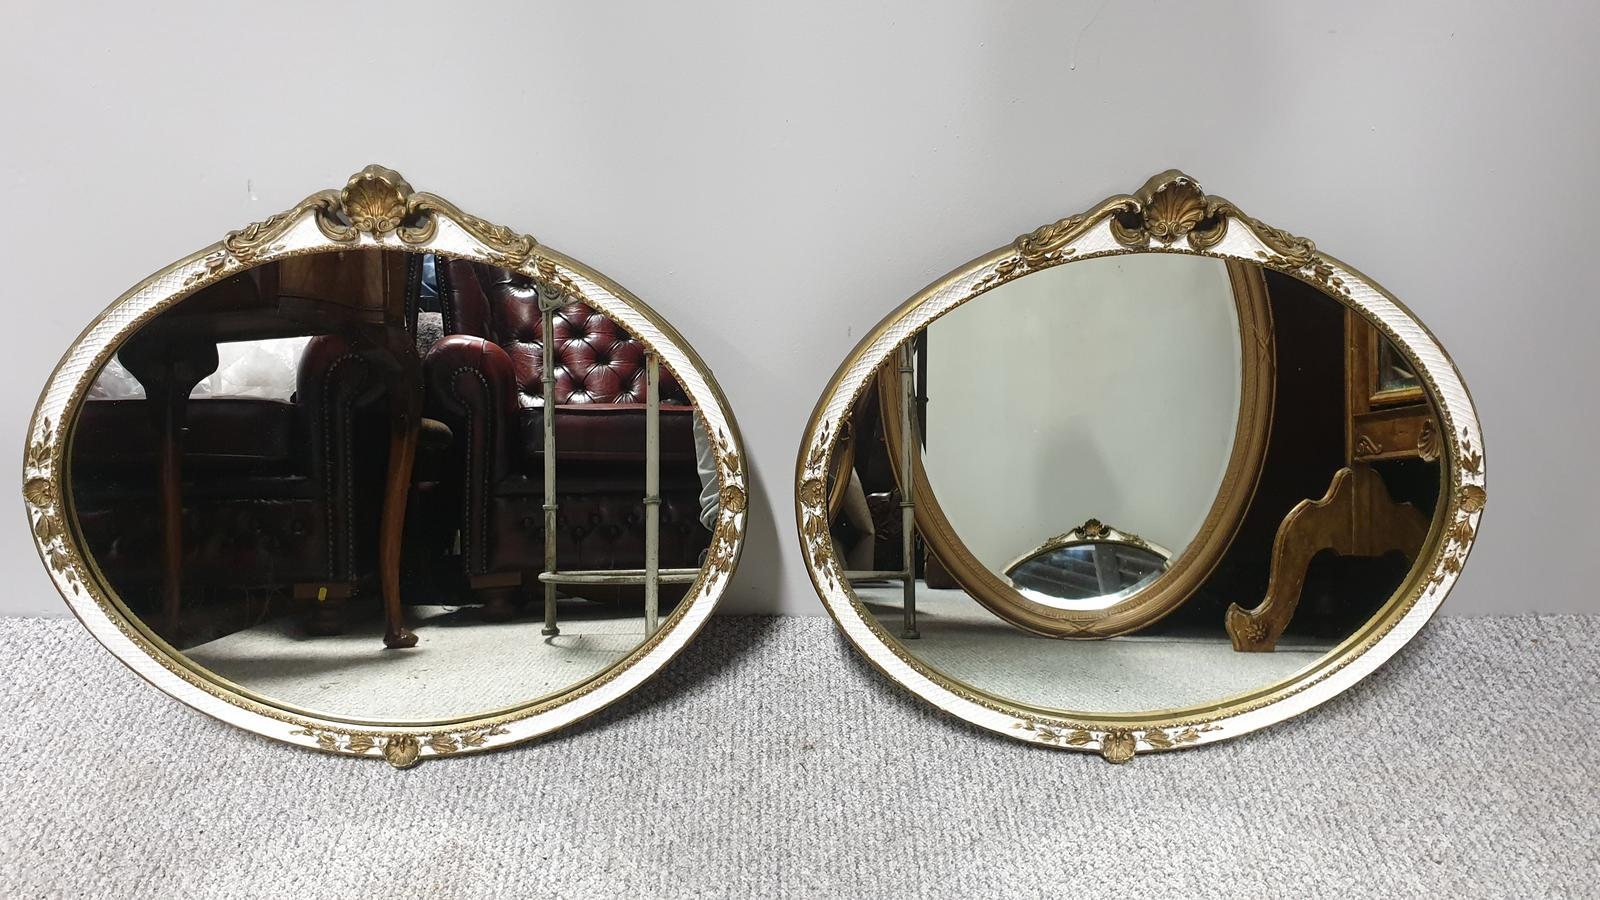 Pair of Oval Mirrors (1 of 1)